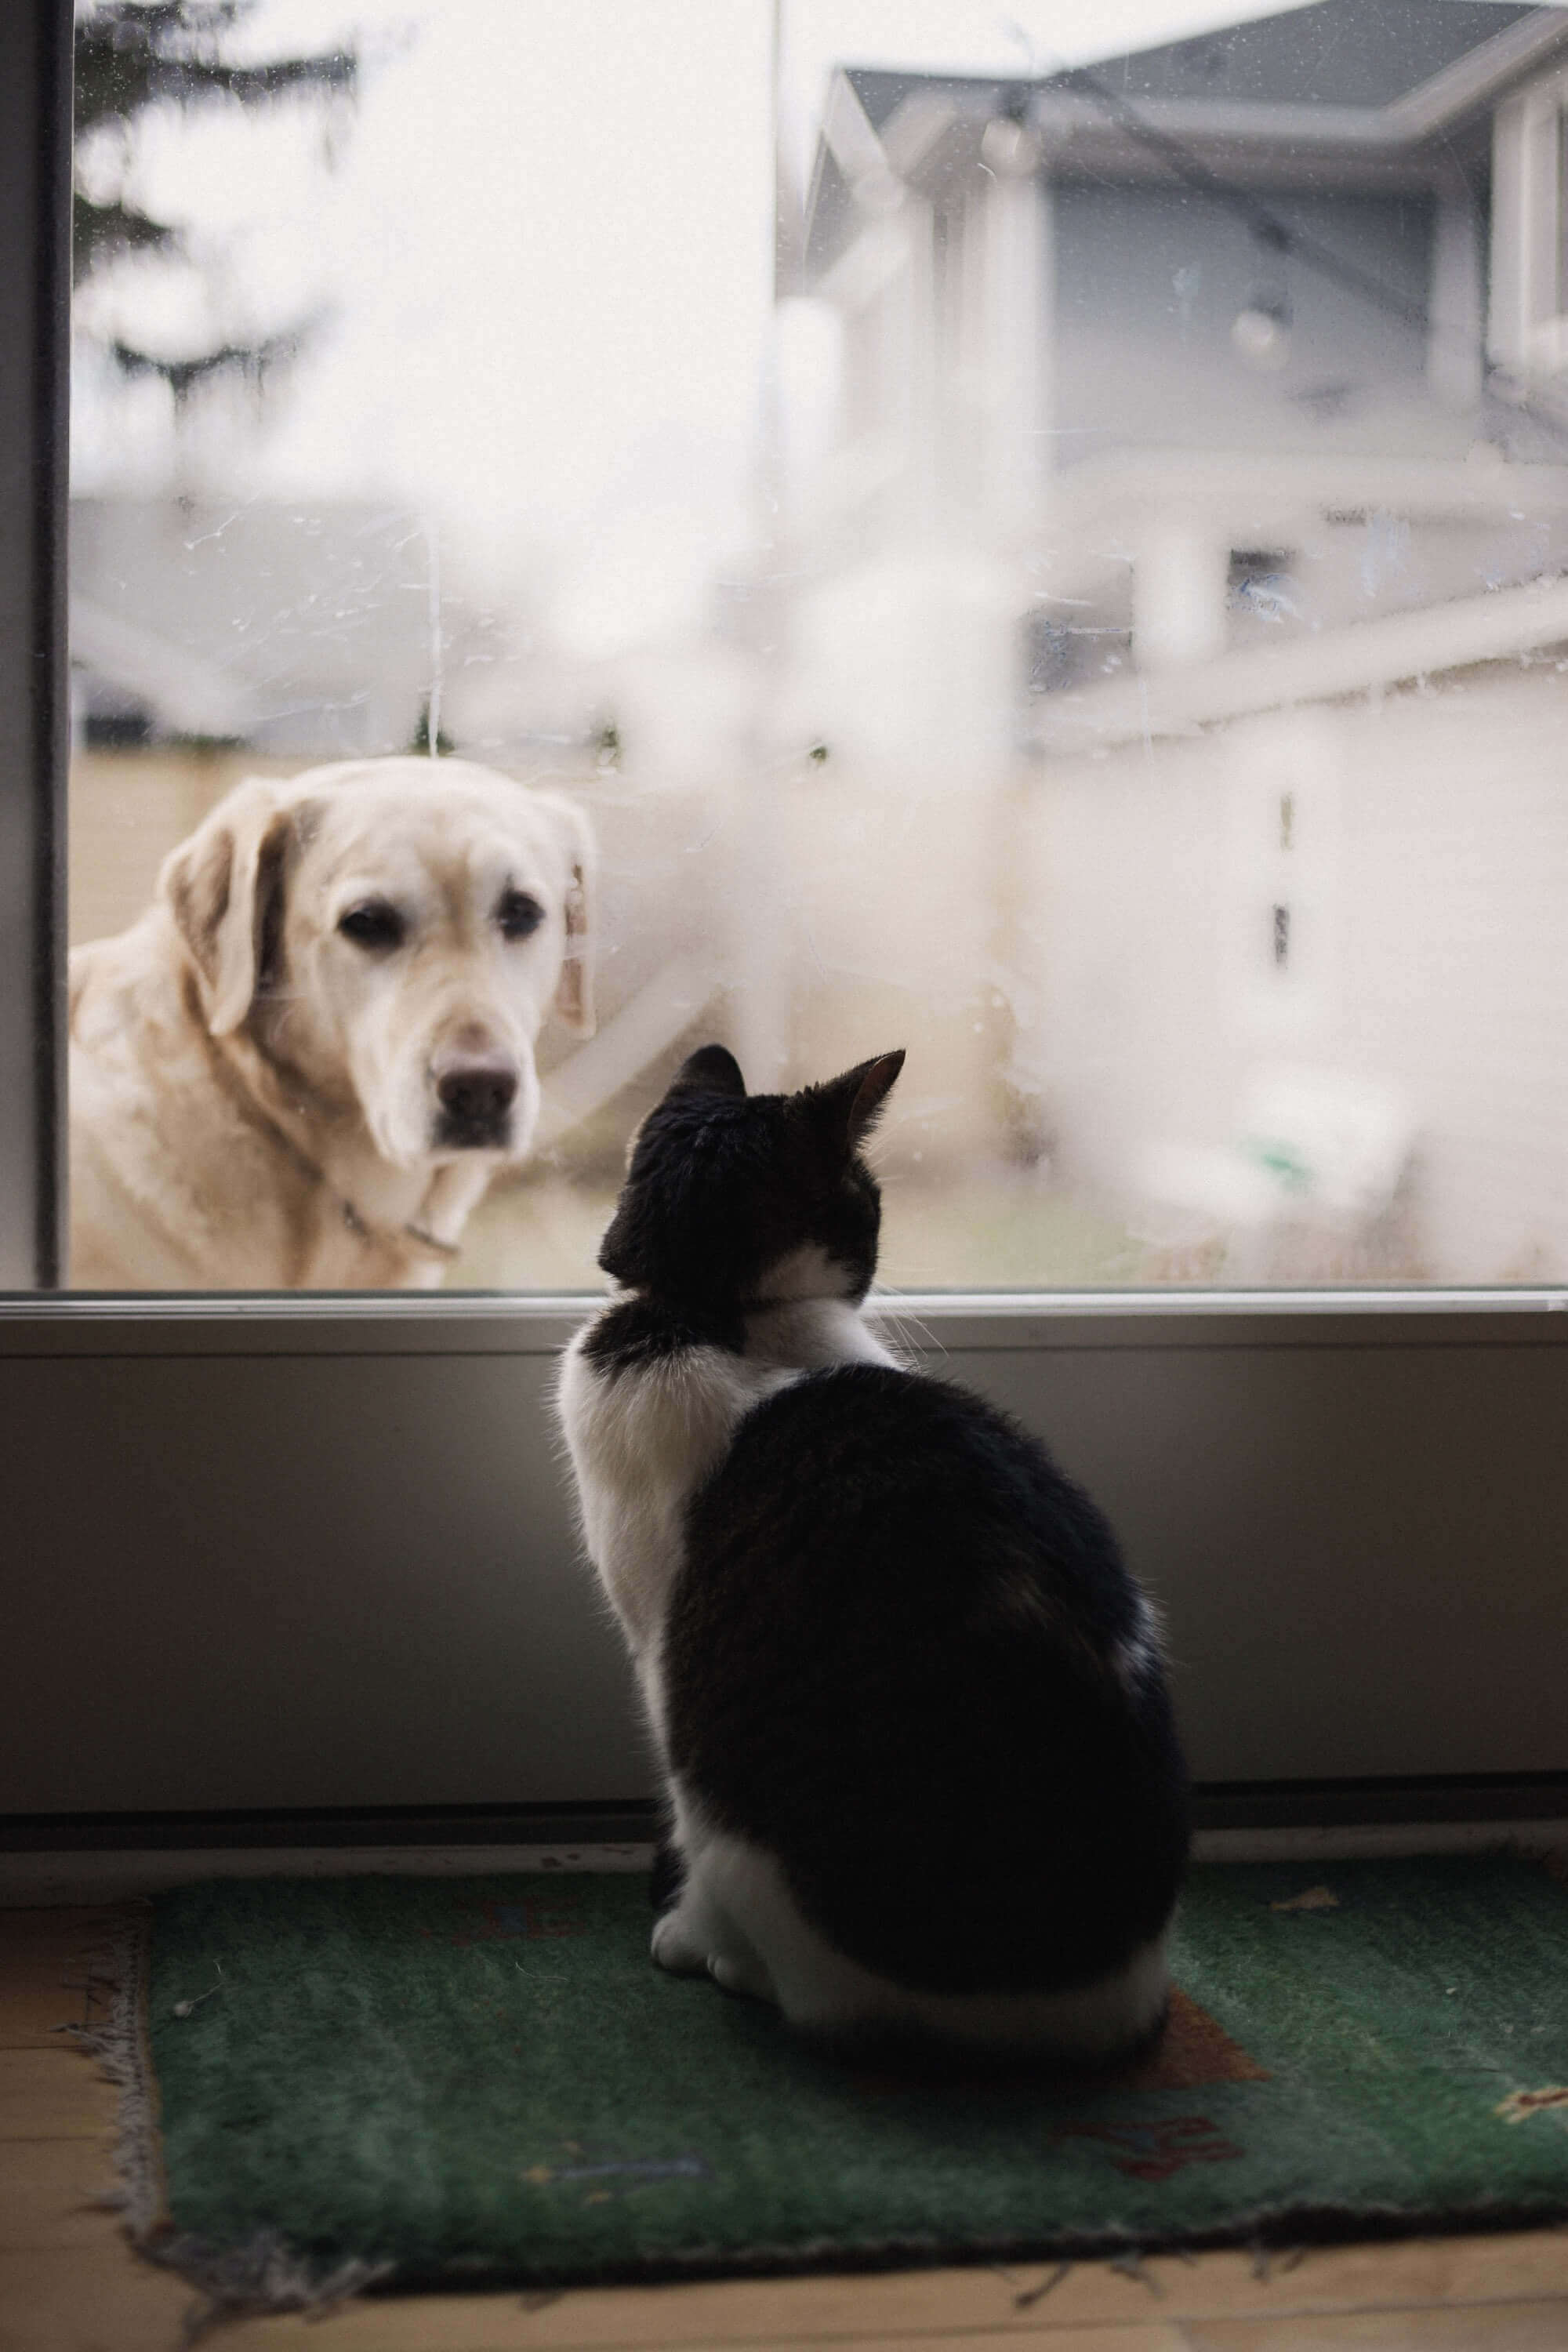 A dog and a cat starring at each other.